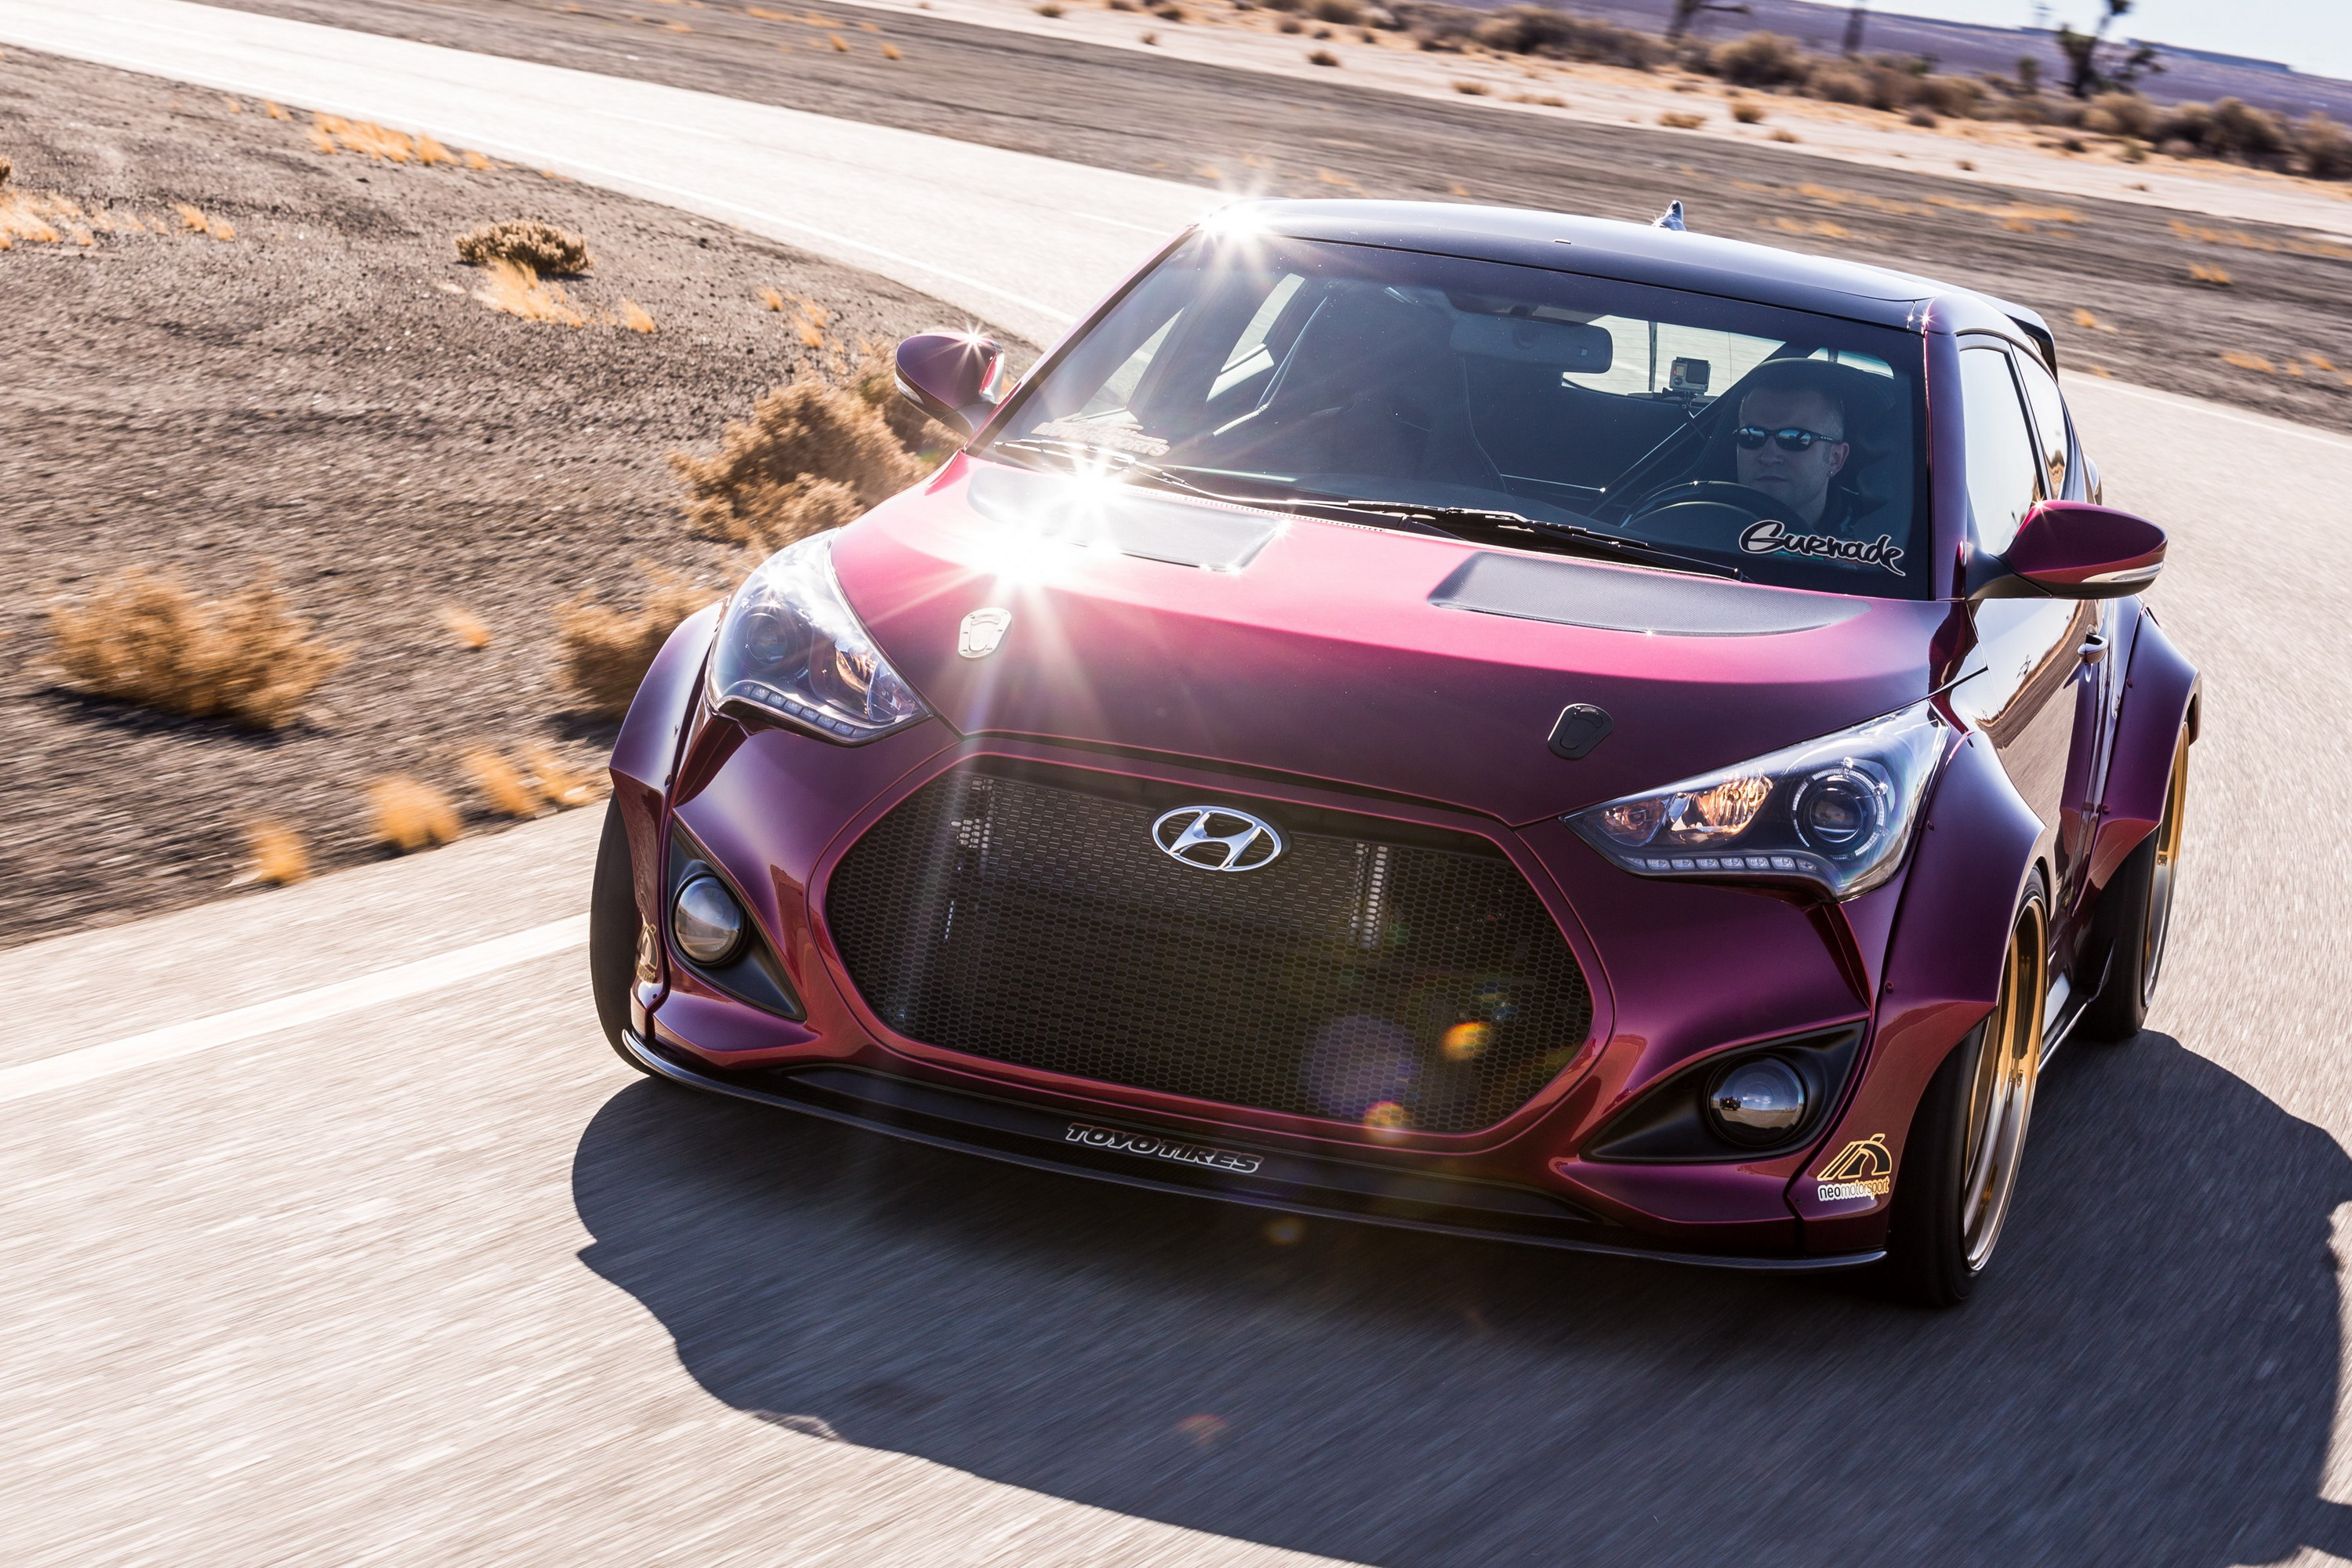 2016 Hyundai Veloster Concept By Gurnade Top Speed Turbo Intercooler